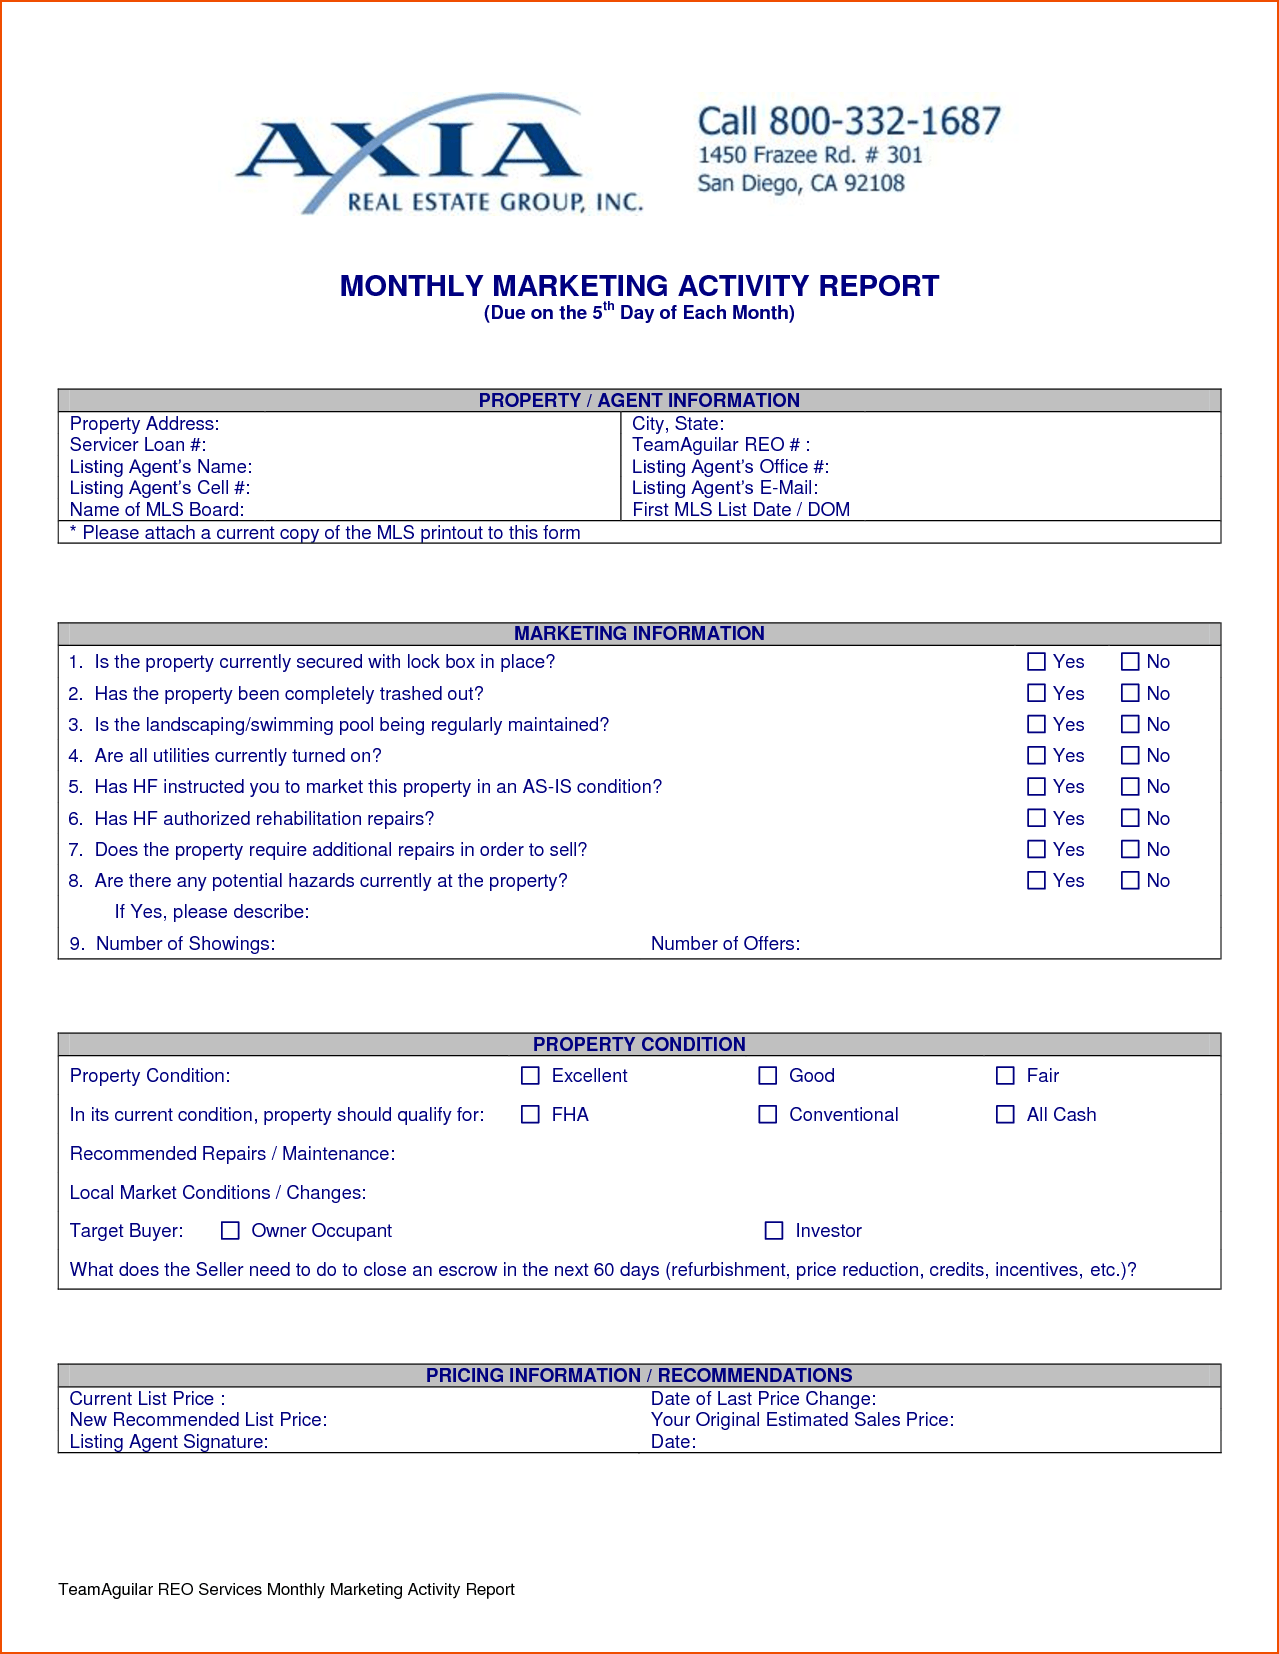 Sample Sales Call Reports and Weekly Sales Activity Report Sample